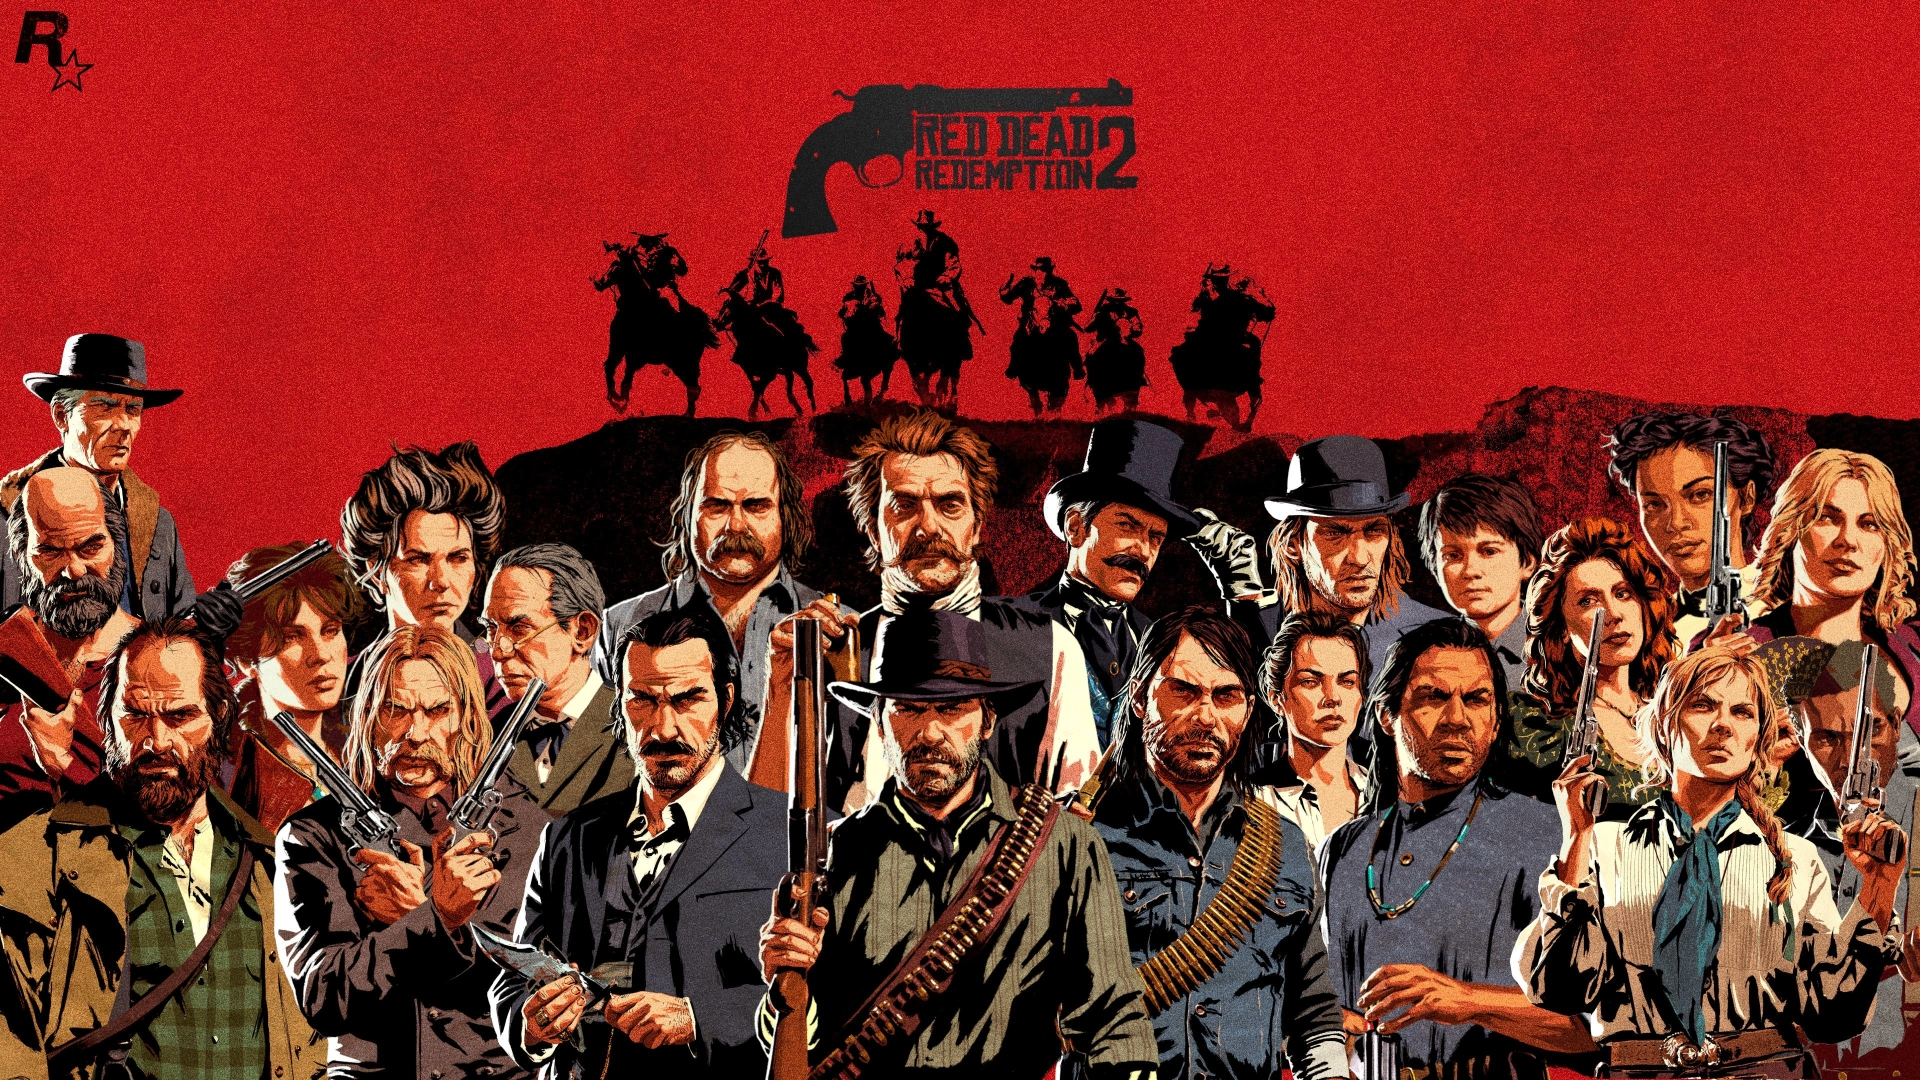 1920x1080 2019 Red Dead Redemption 2 Game 1080p Laptop Full Hd